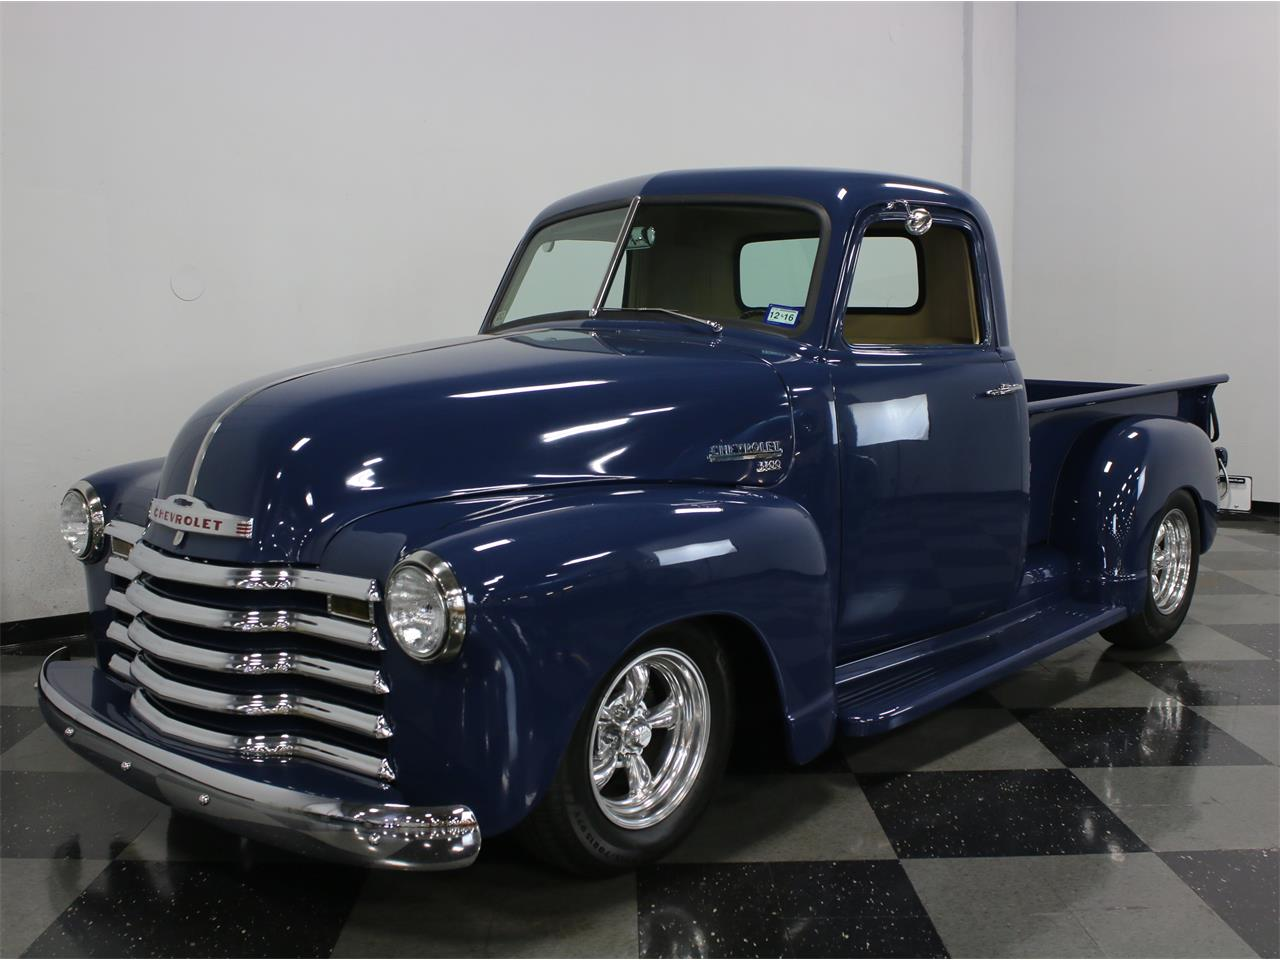 Large Picture of '50 Chevrolet 3100 - $48,000.00 Offered by a Private Seller - ODW8